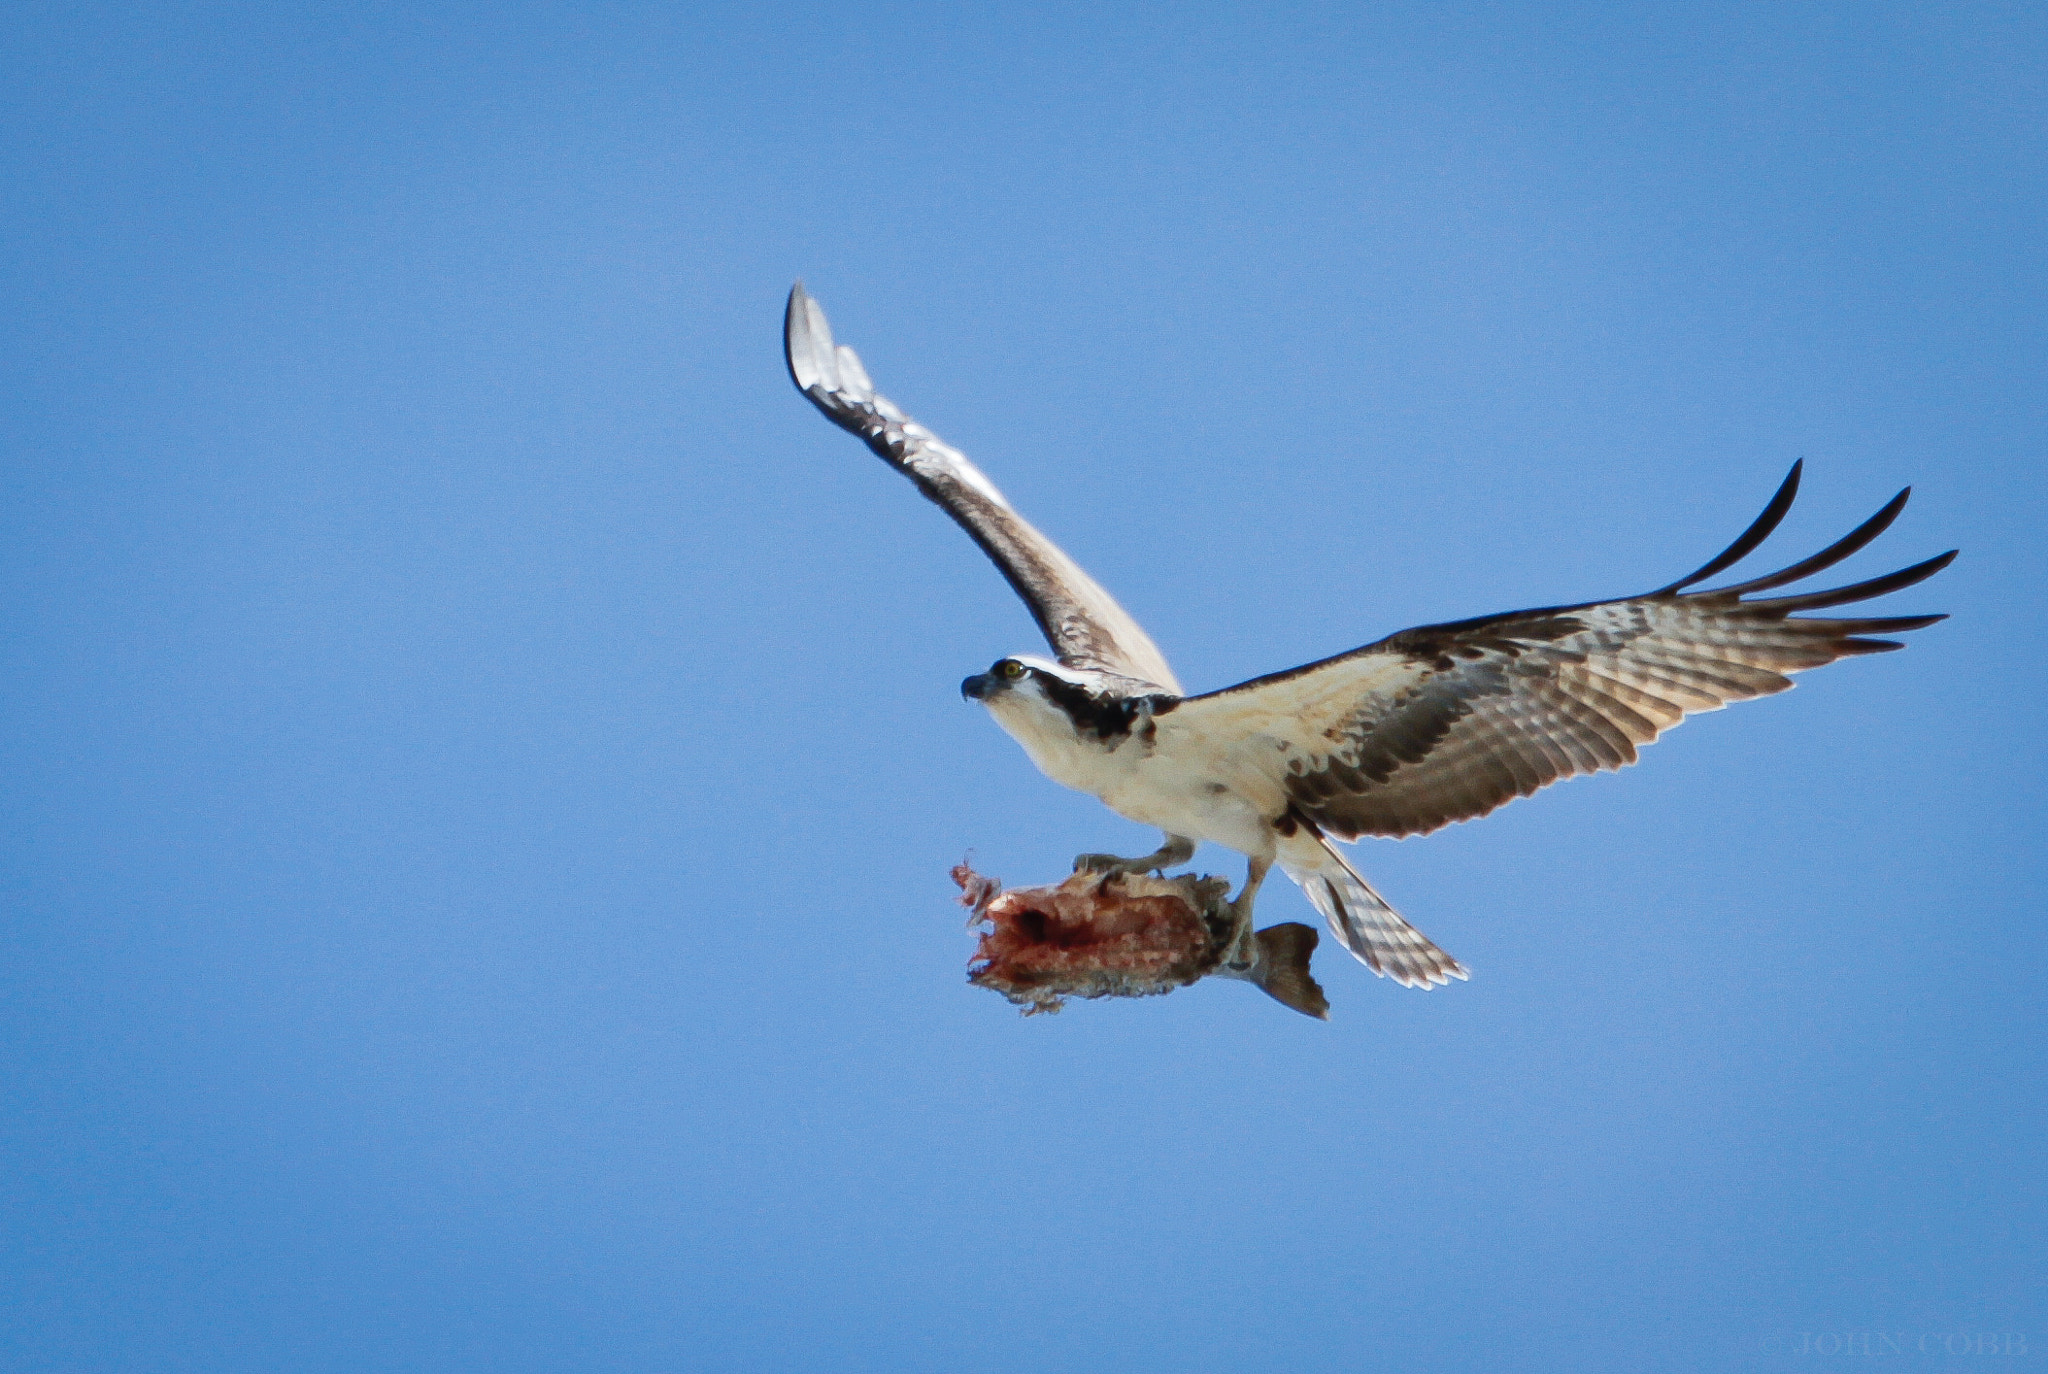 Photograph Lunch on the Fly by John Cobb on 500px